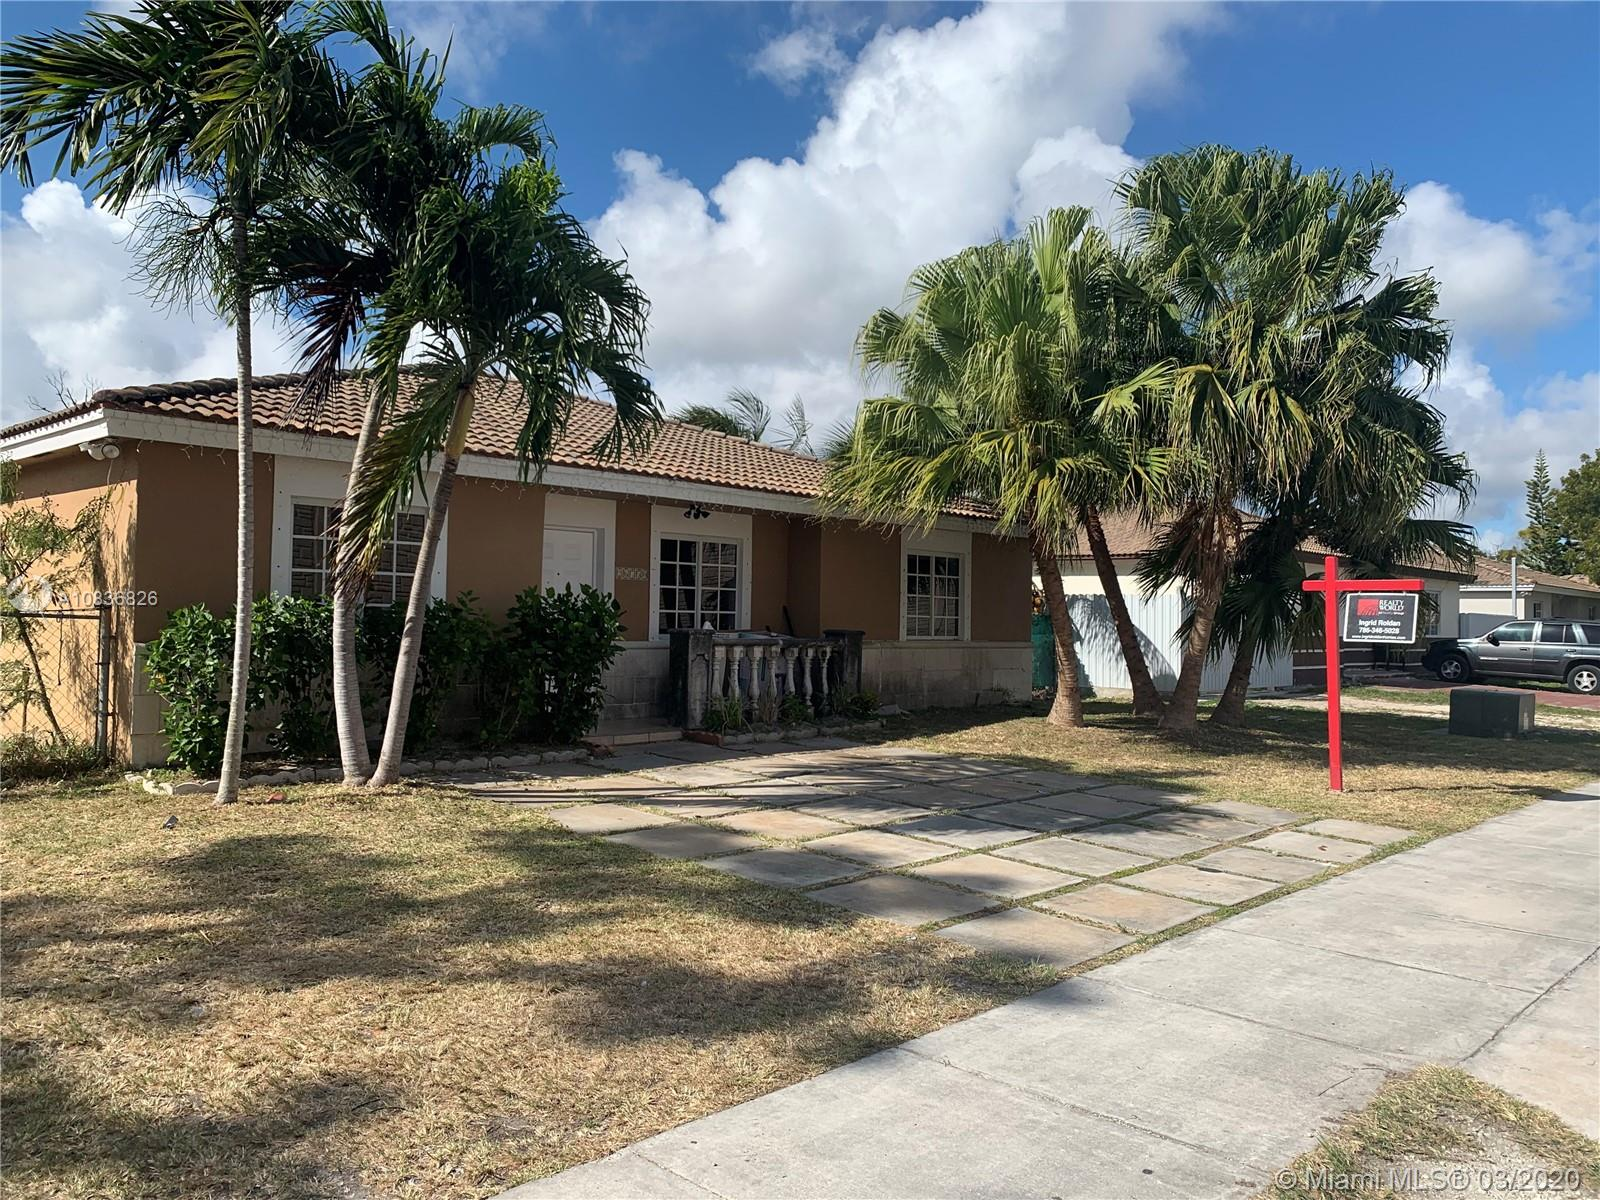 26750 SW 132nd Ave, Homestead, FL 33032 - Homestead, FL real estate listing